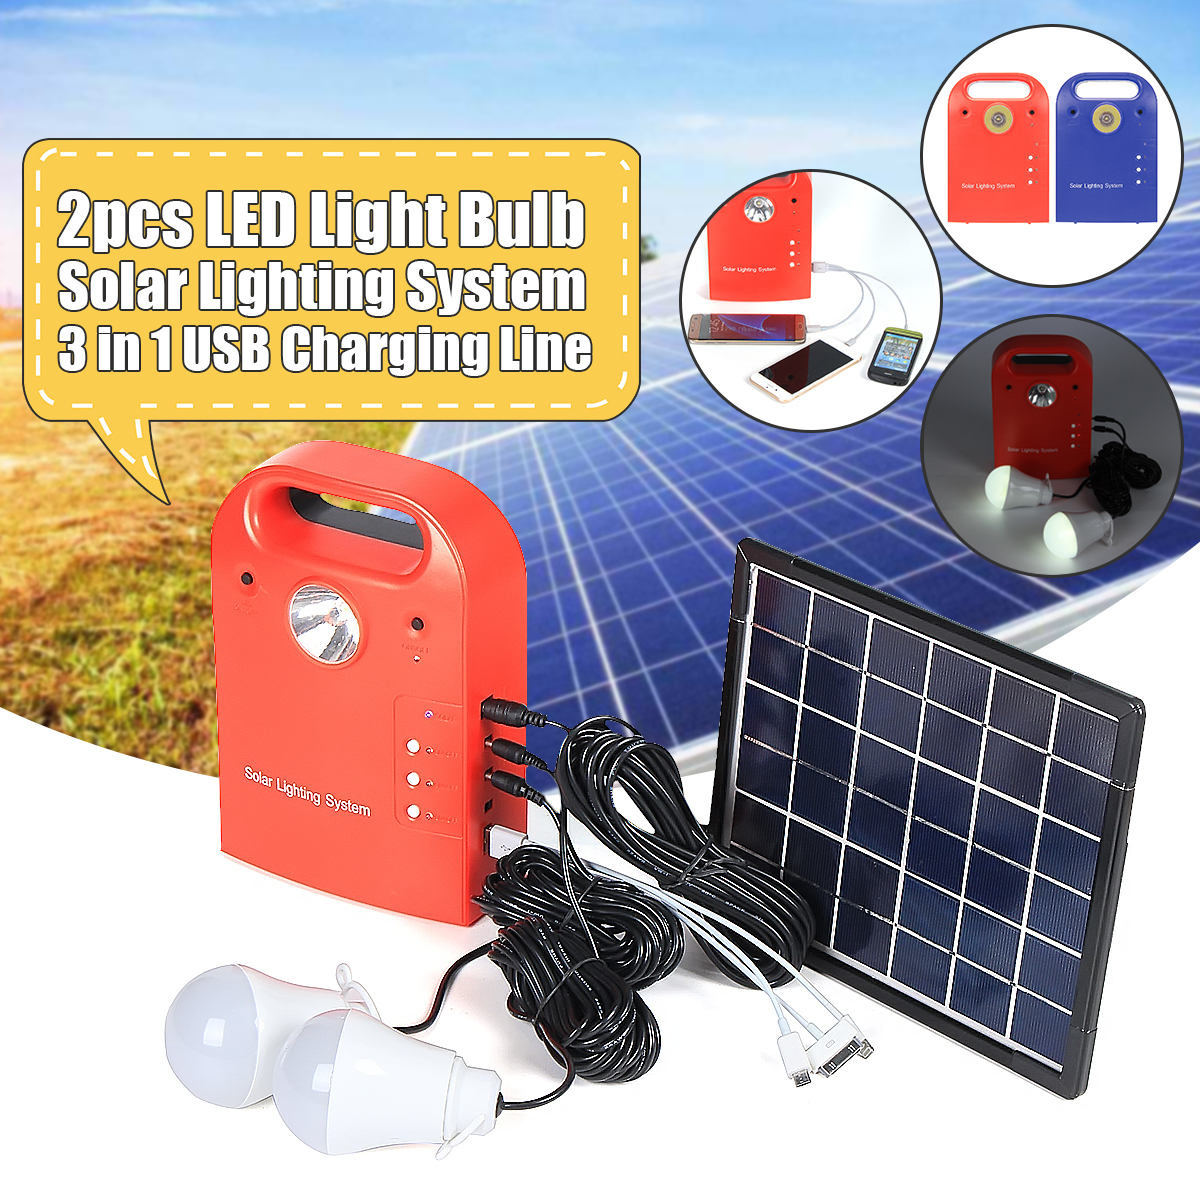 Portable Small DC Solar Panels Charging Generator Power with solar generator Highlight LED Light Bulb for Home Outdoor Tourism Picnic Camping (Color: Red/Blue)